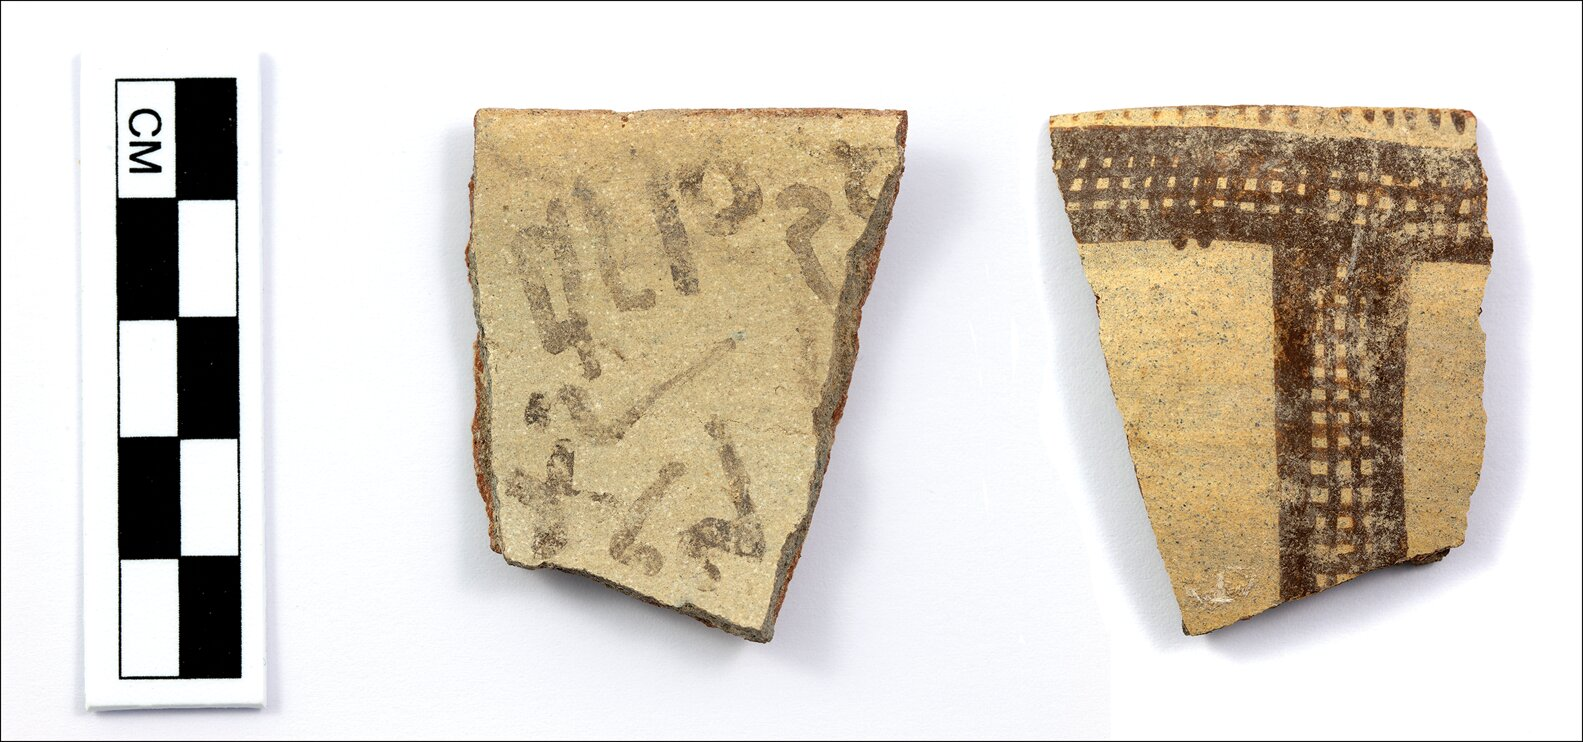 The oldest writing ever found in Israel identified on an ancient fragment of pottery